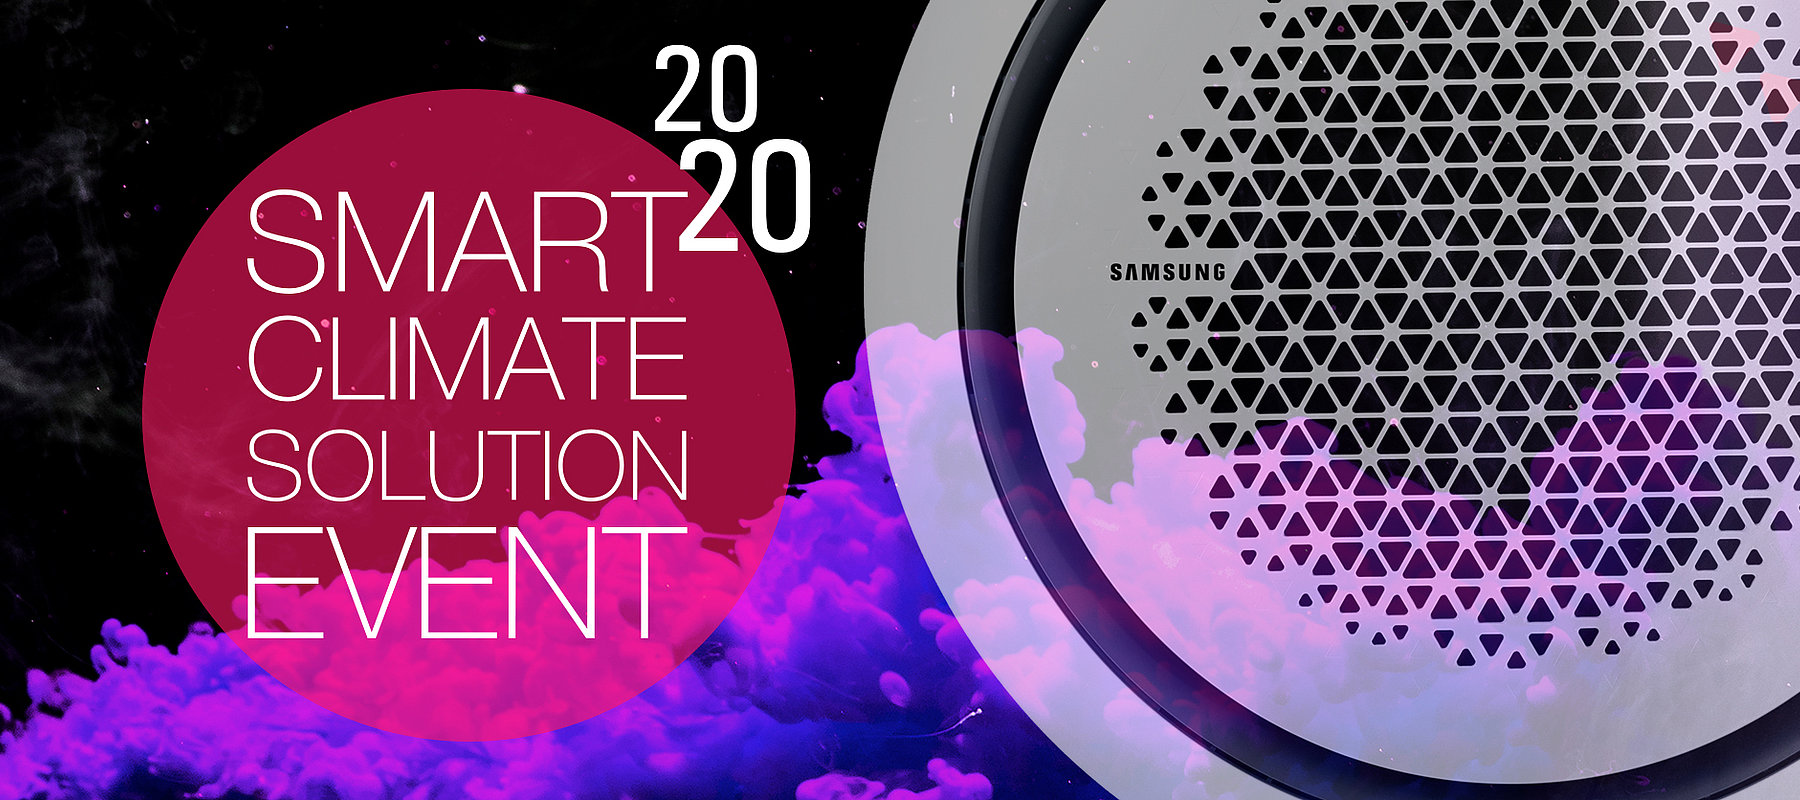 Smart Climate Solution Event 2020